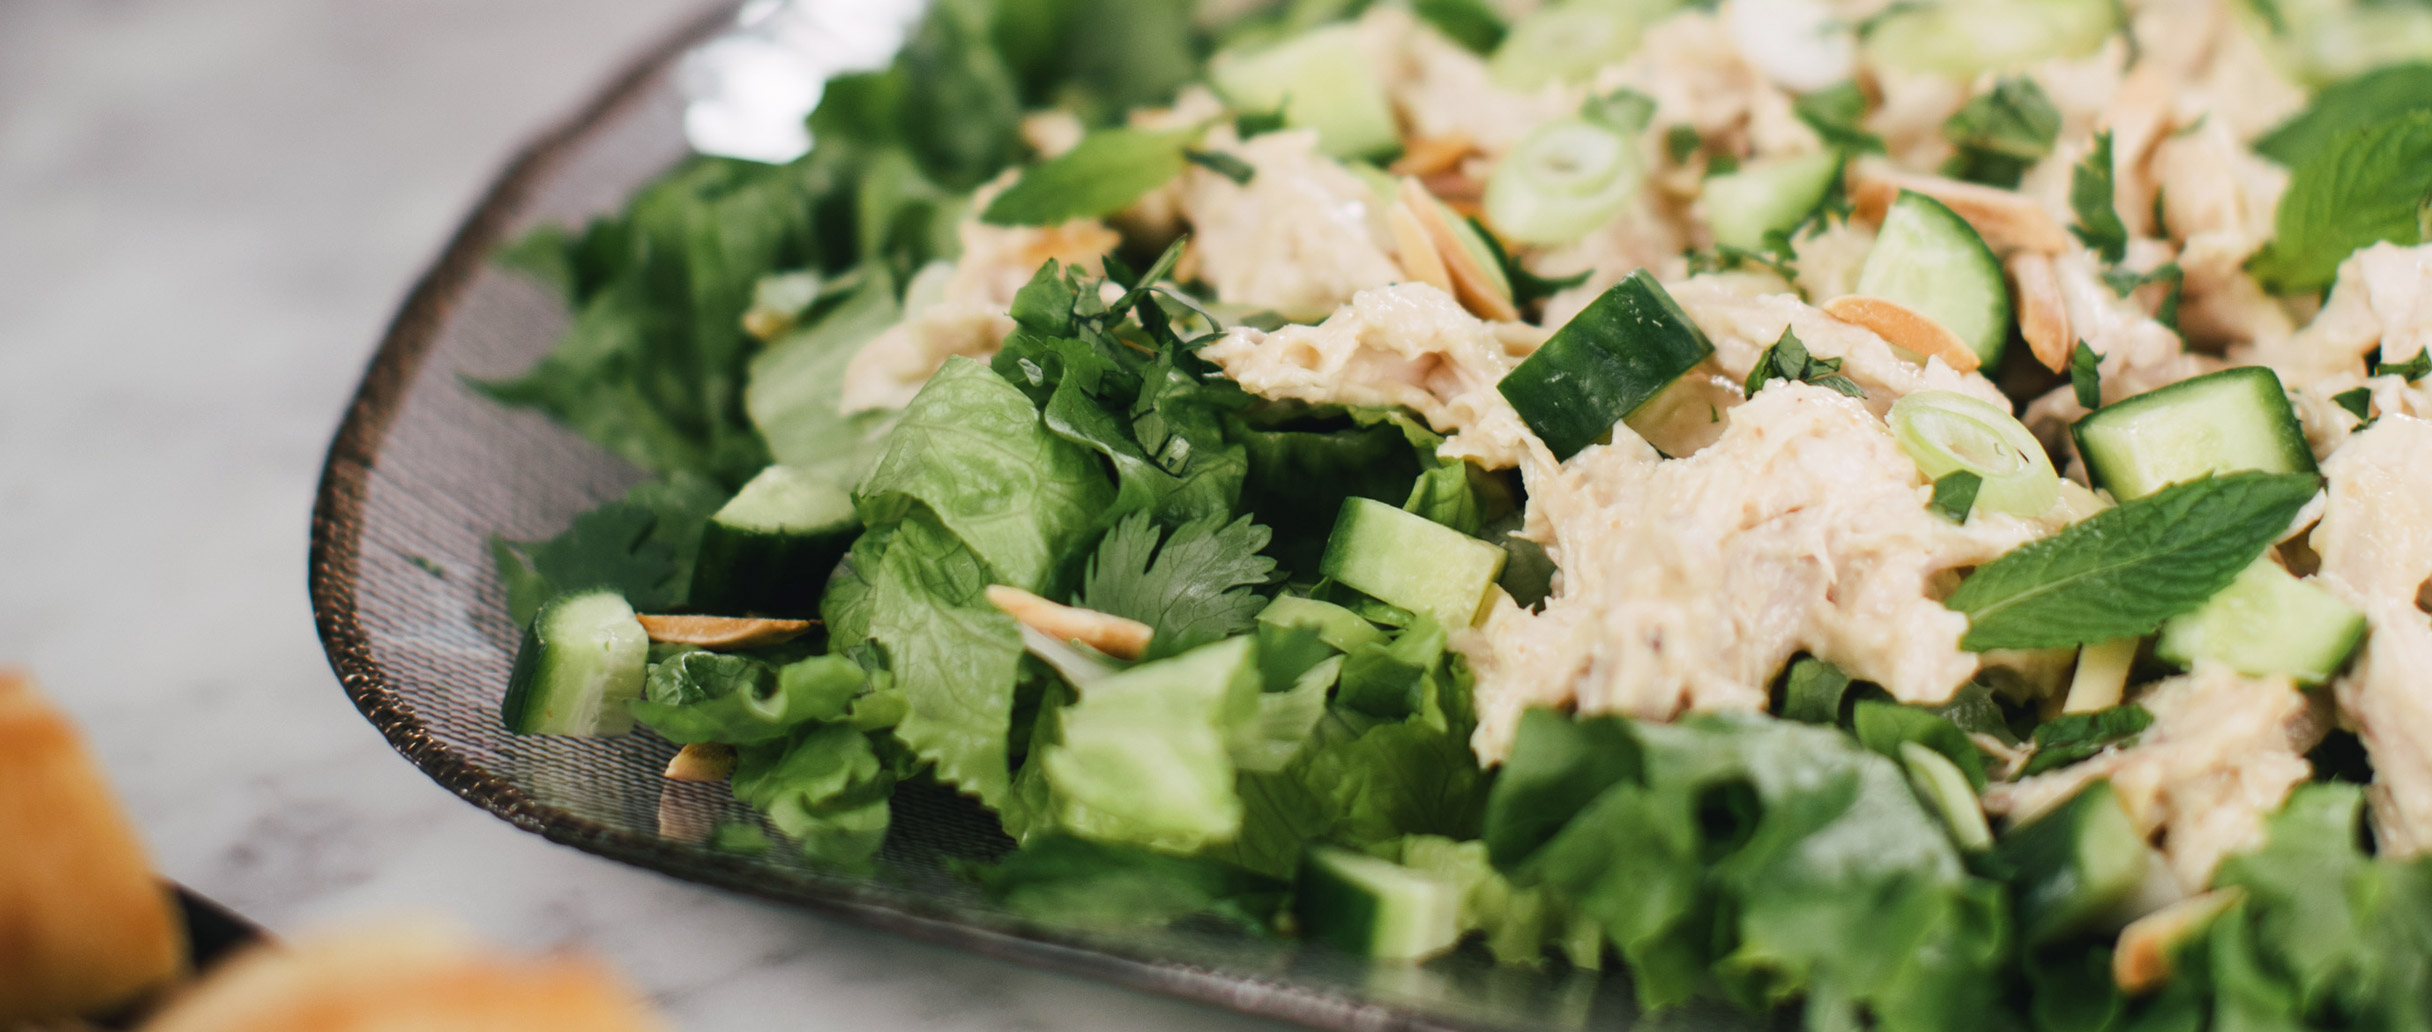 creamy miso chicken salad